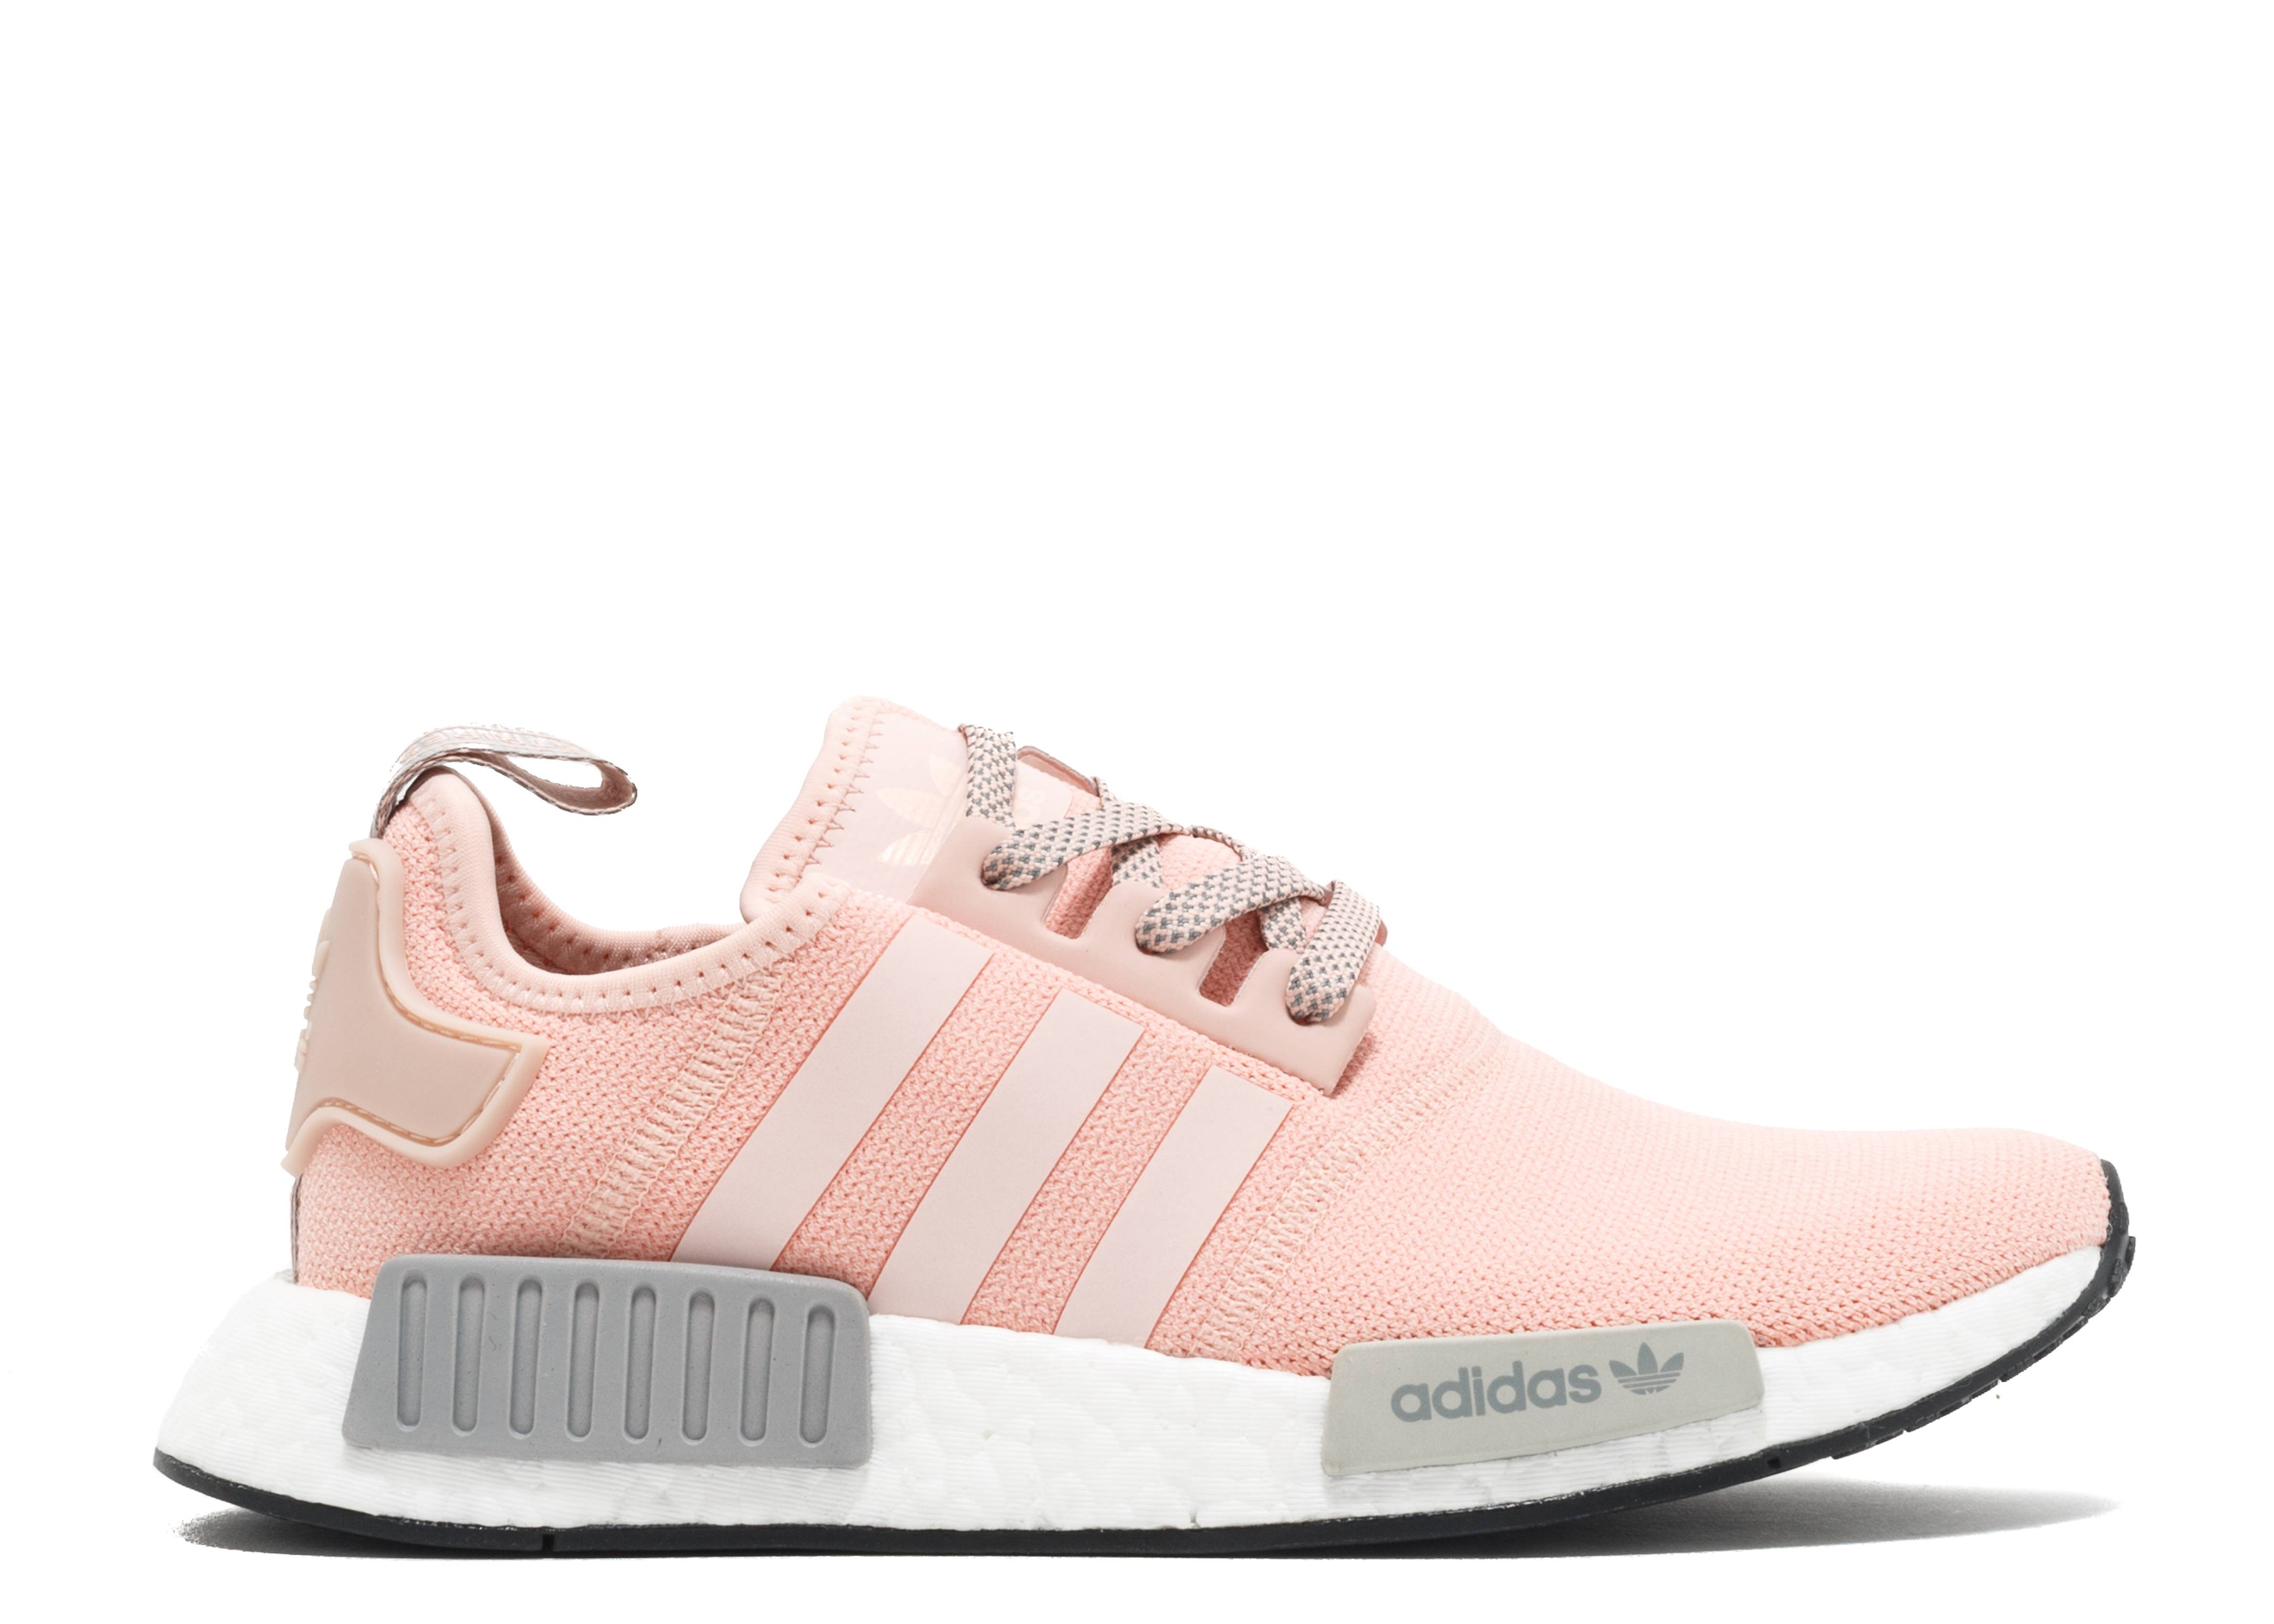 nmd r1 vapour pink light onix nmd adidas flight club. Black Bedroom Furniture Sets. Home Design Ideas